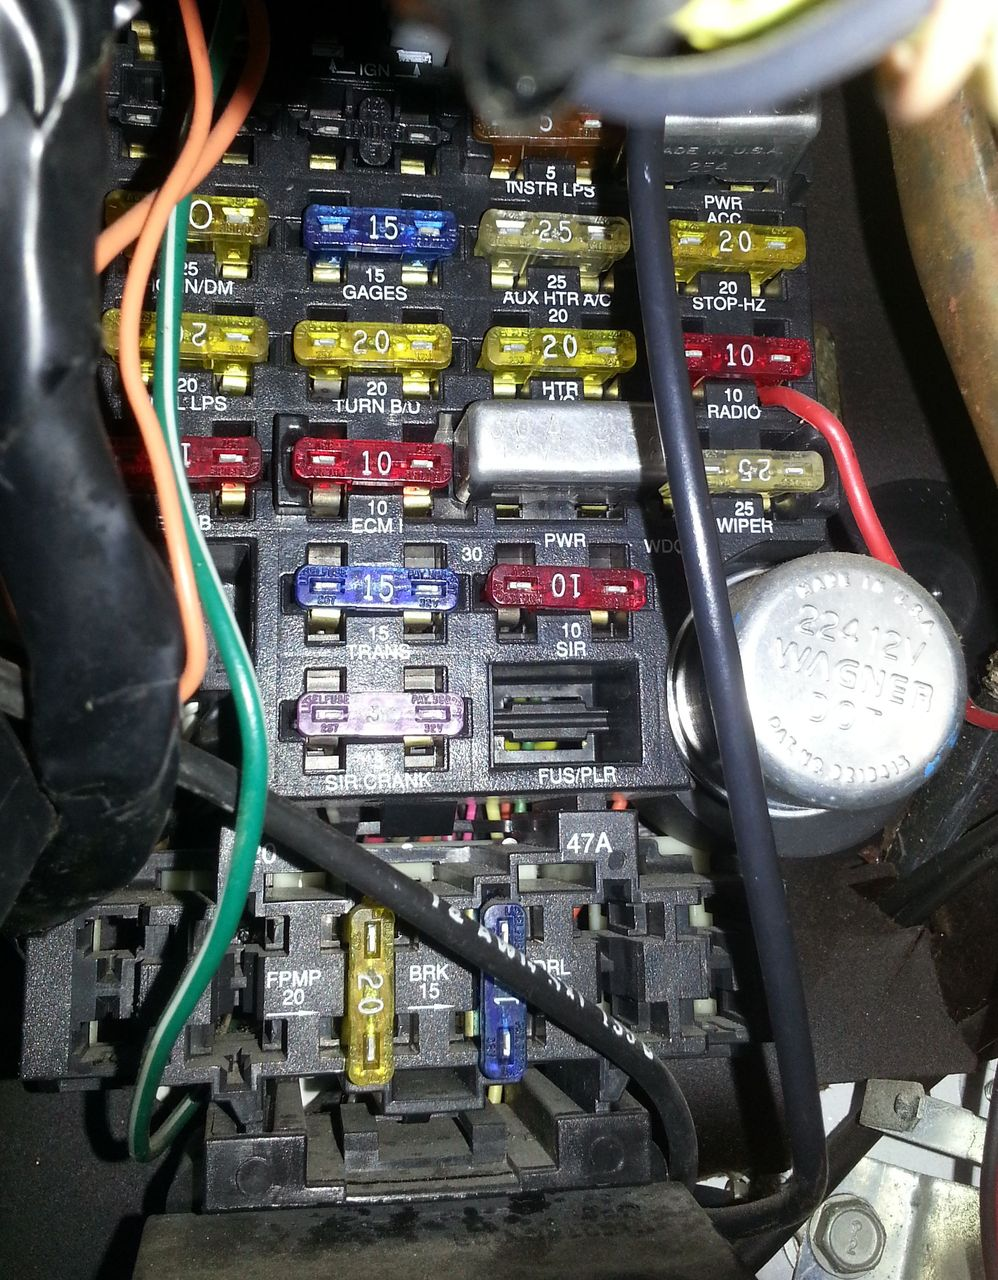 1995 chevy astro fuse box auto electrical wiring diagram lexus is250 fuse box location 1995 chevy [ 998 x 1280 Pixel ]